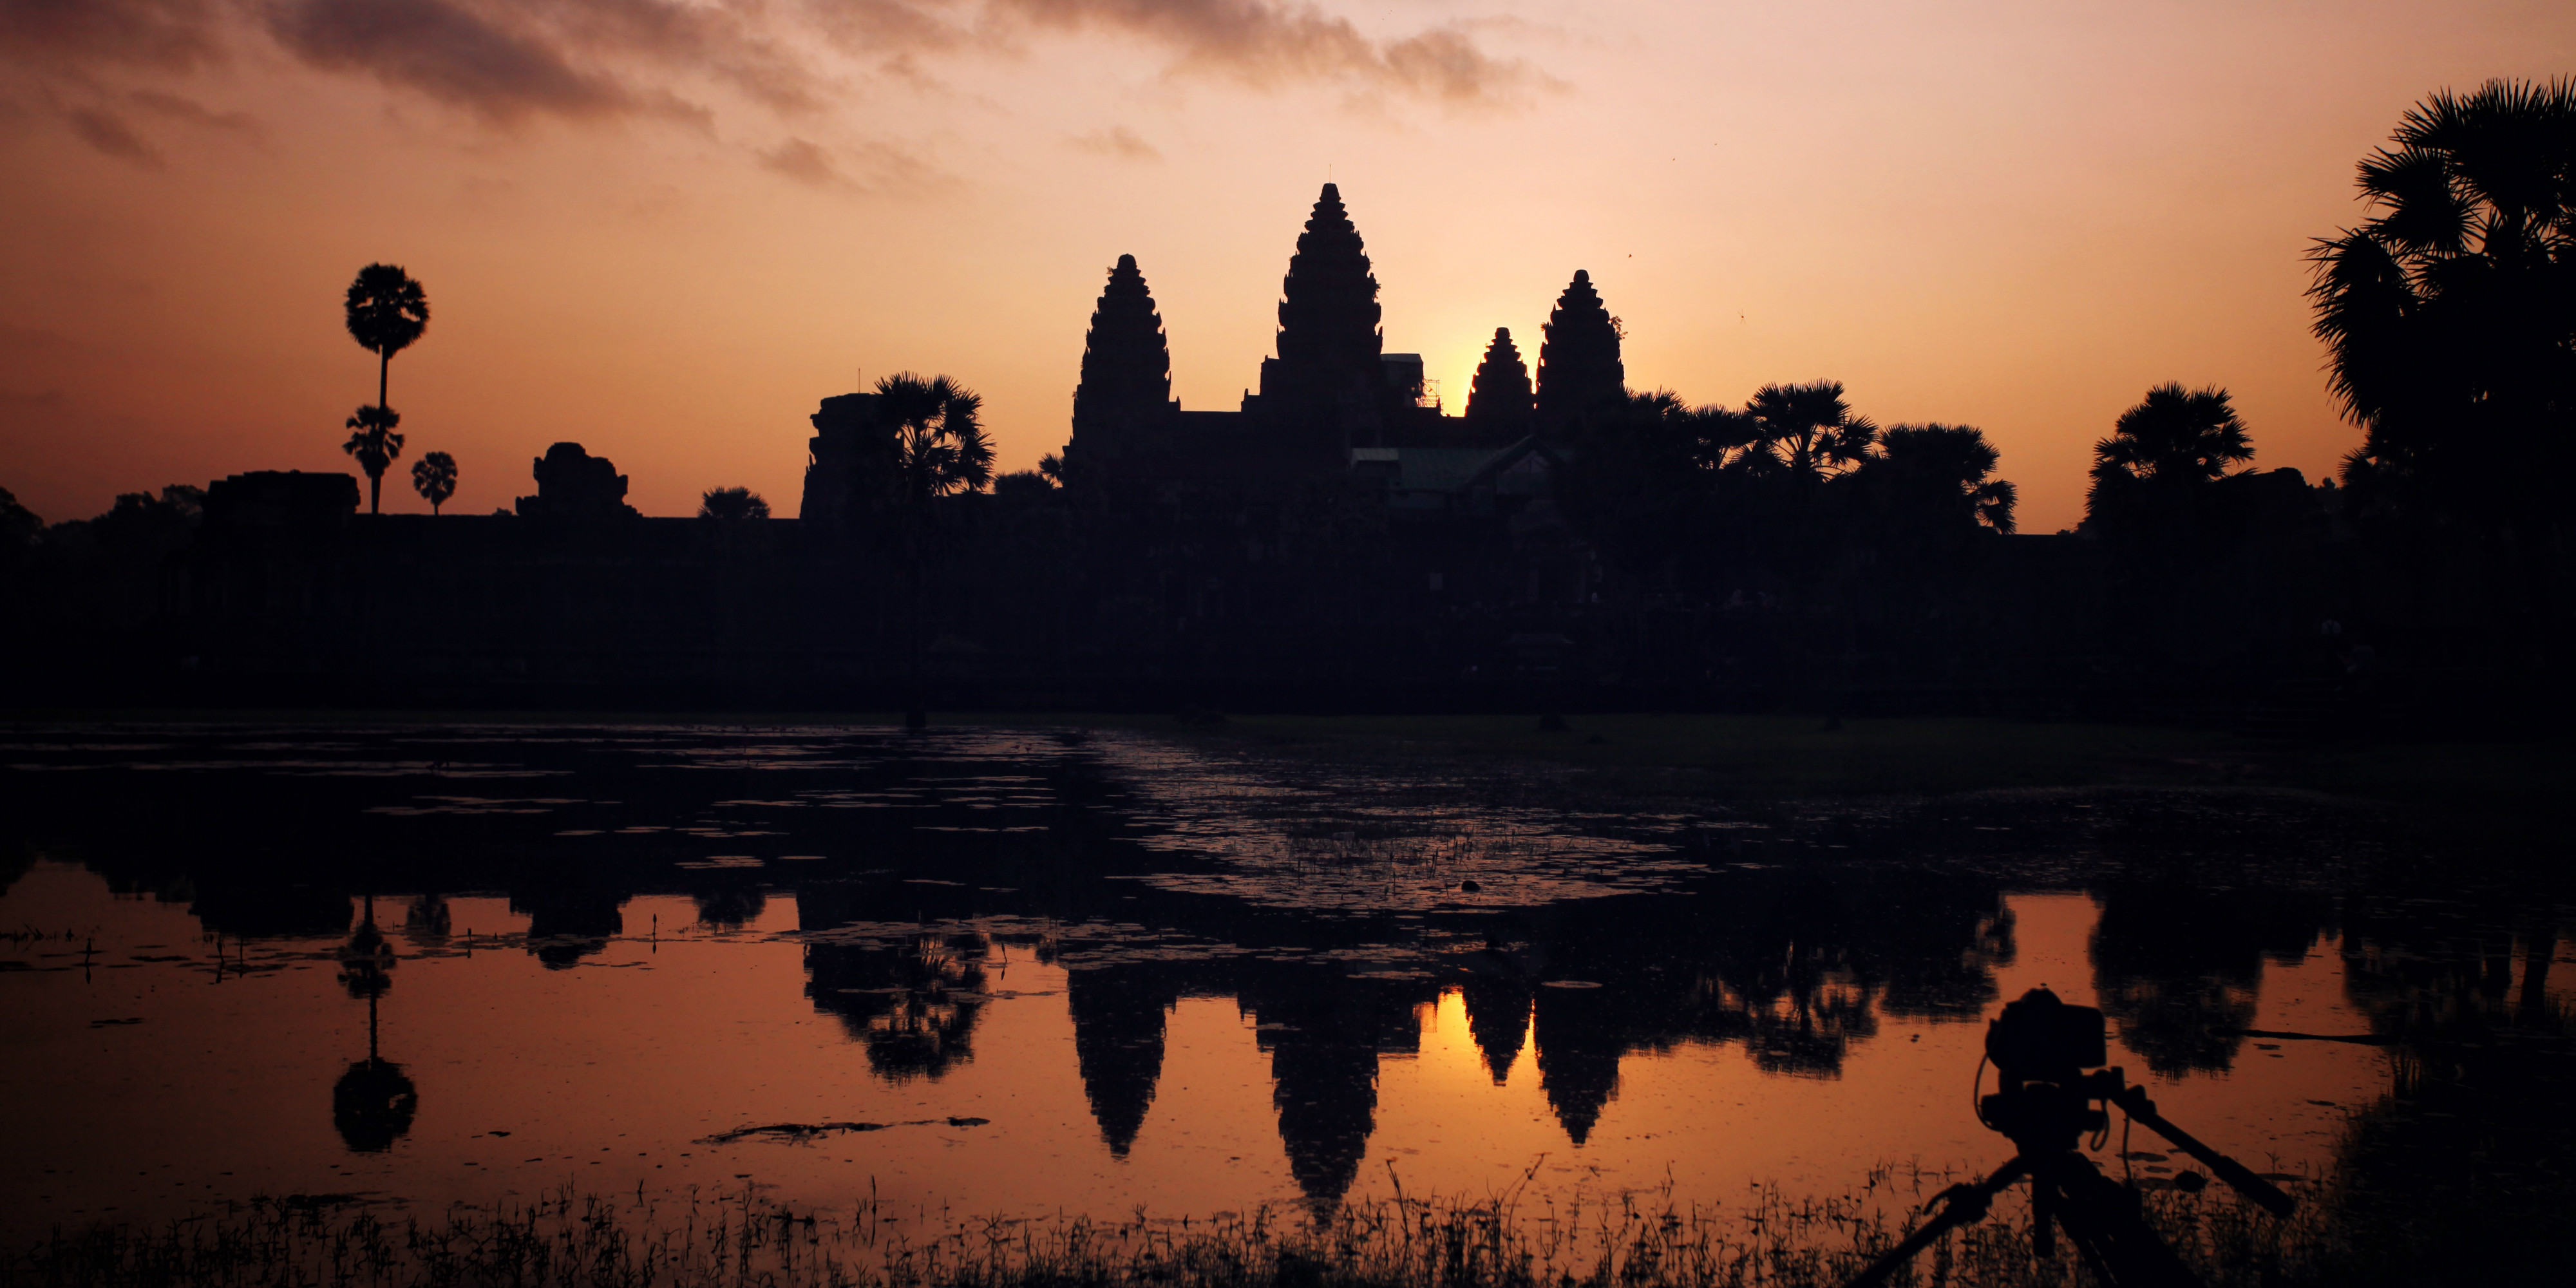 Seeing the Ankor Wat temple at sunrise is one of the best things to do when you take a gap year.